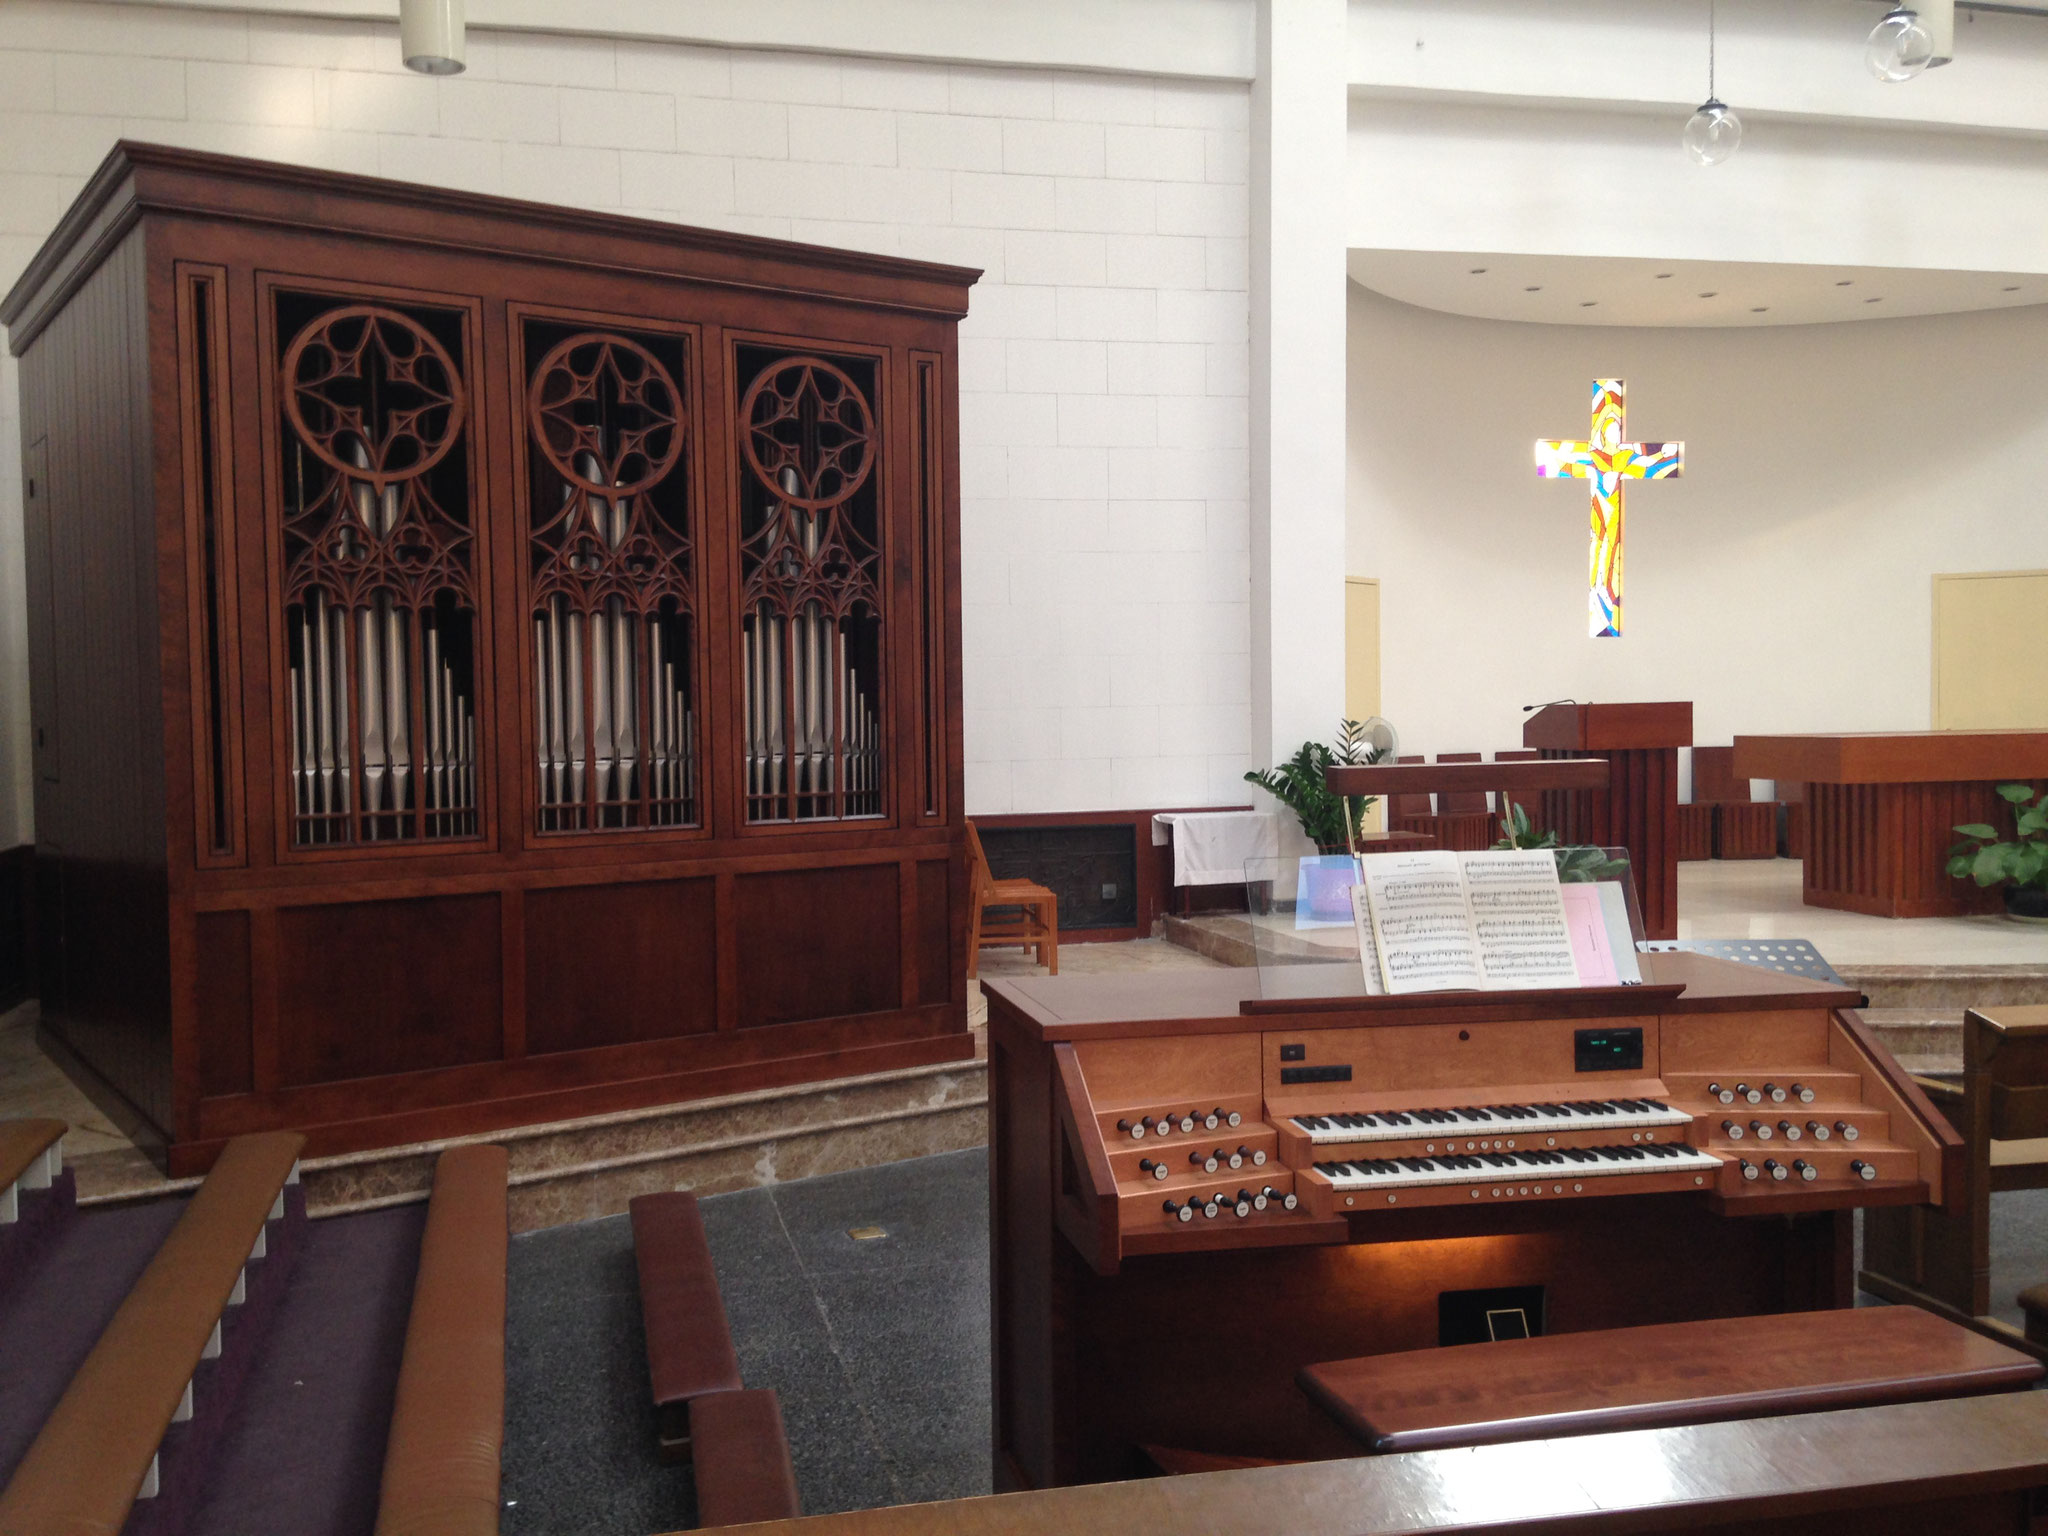 Inspiration organ installed in Beijing Seminary